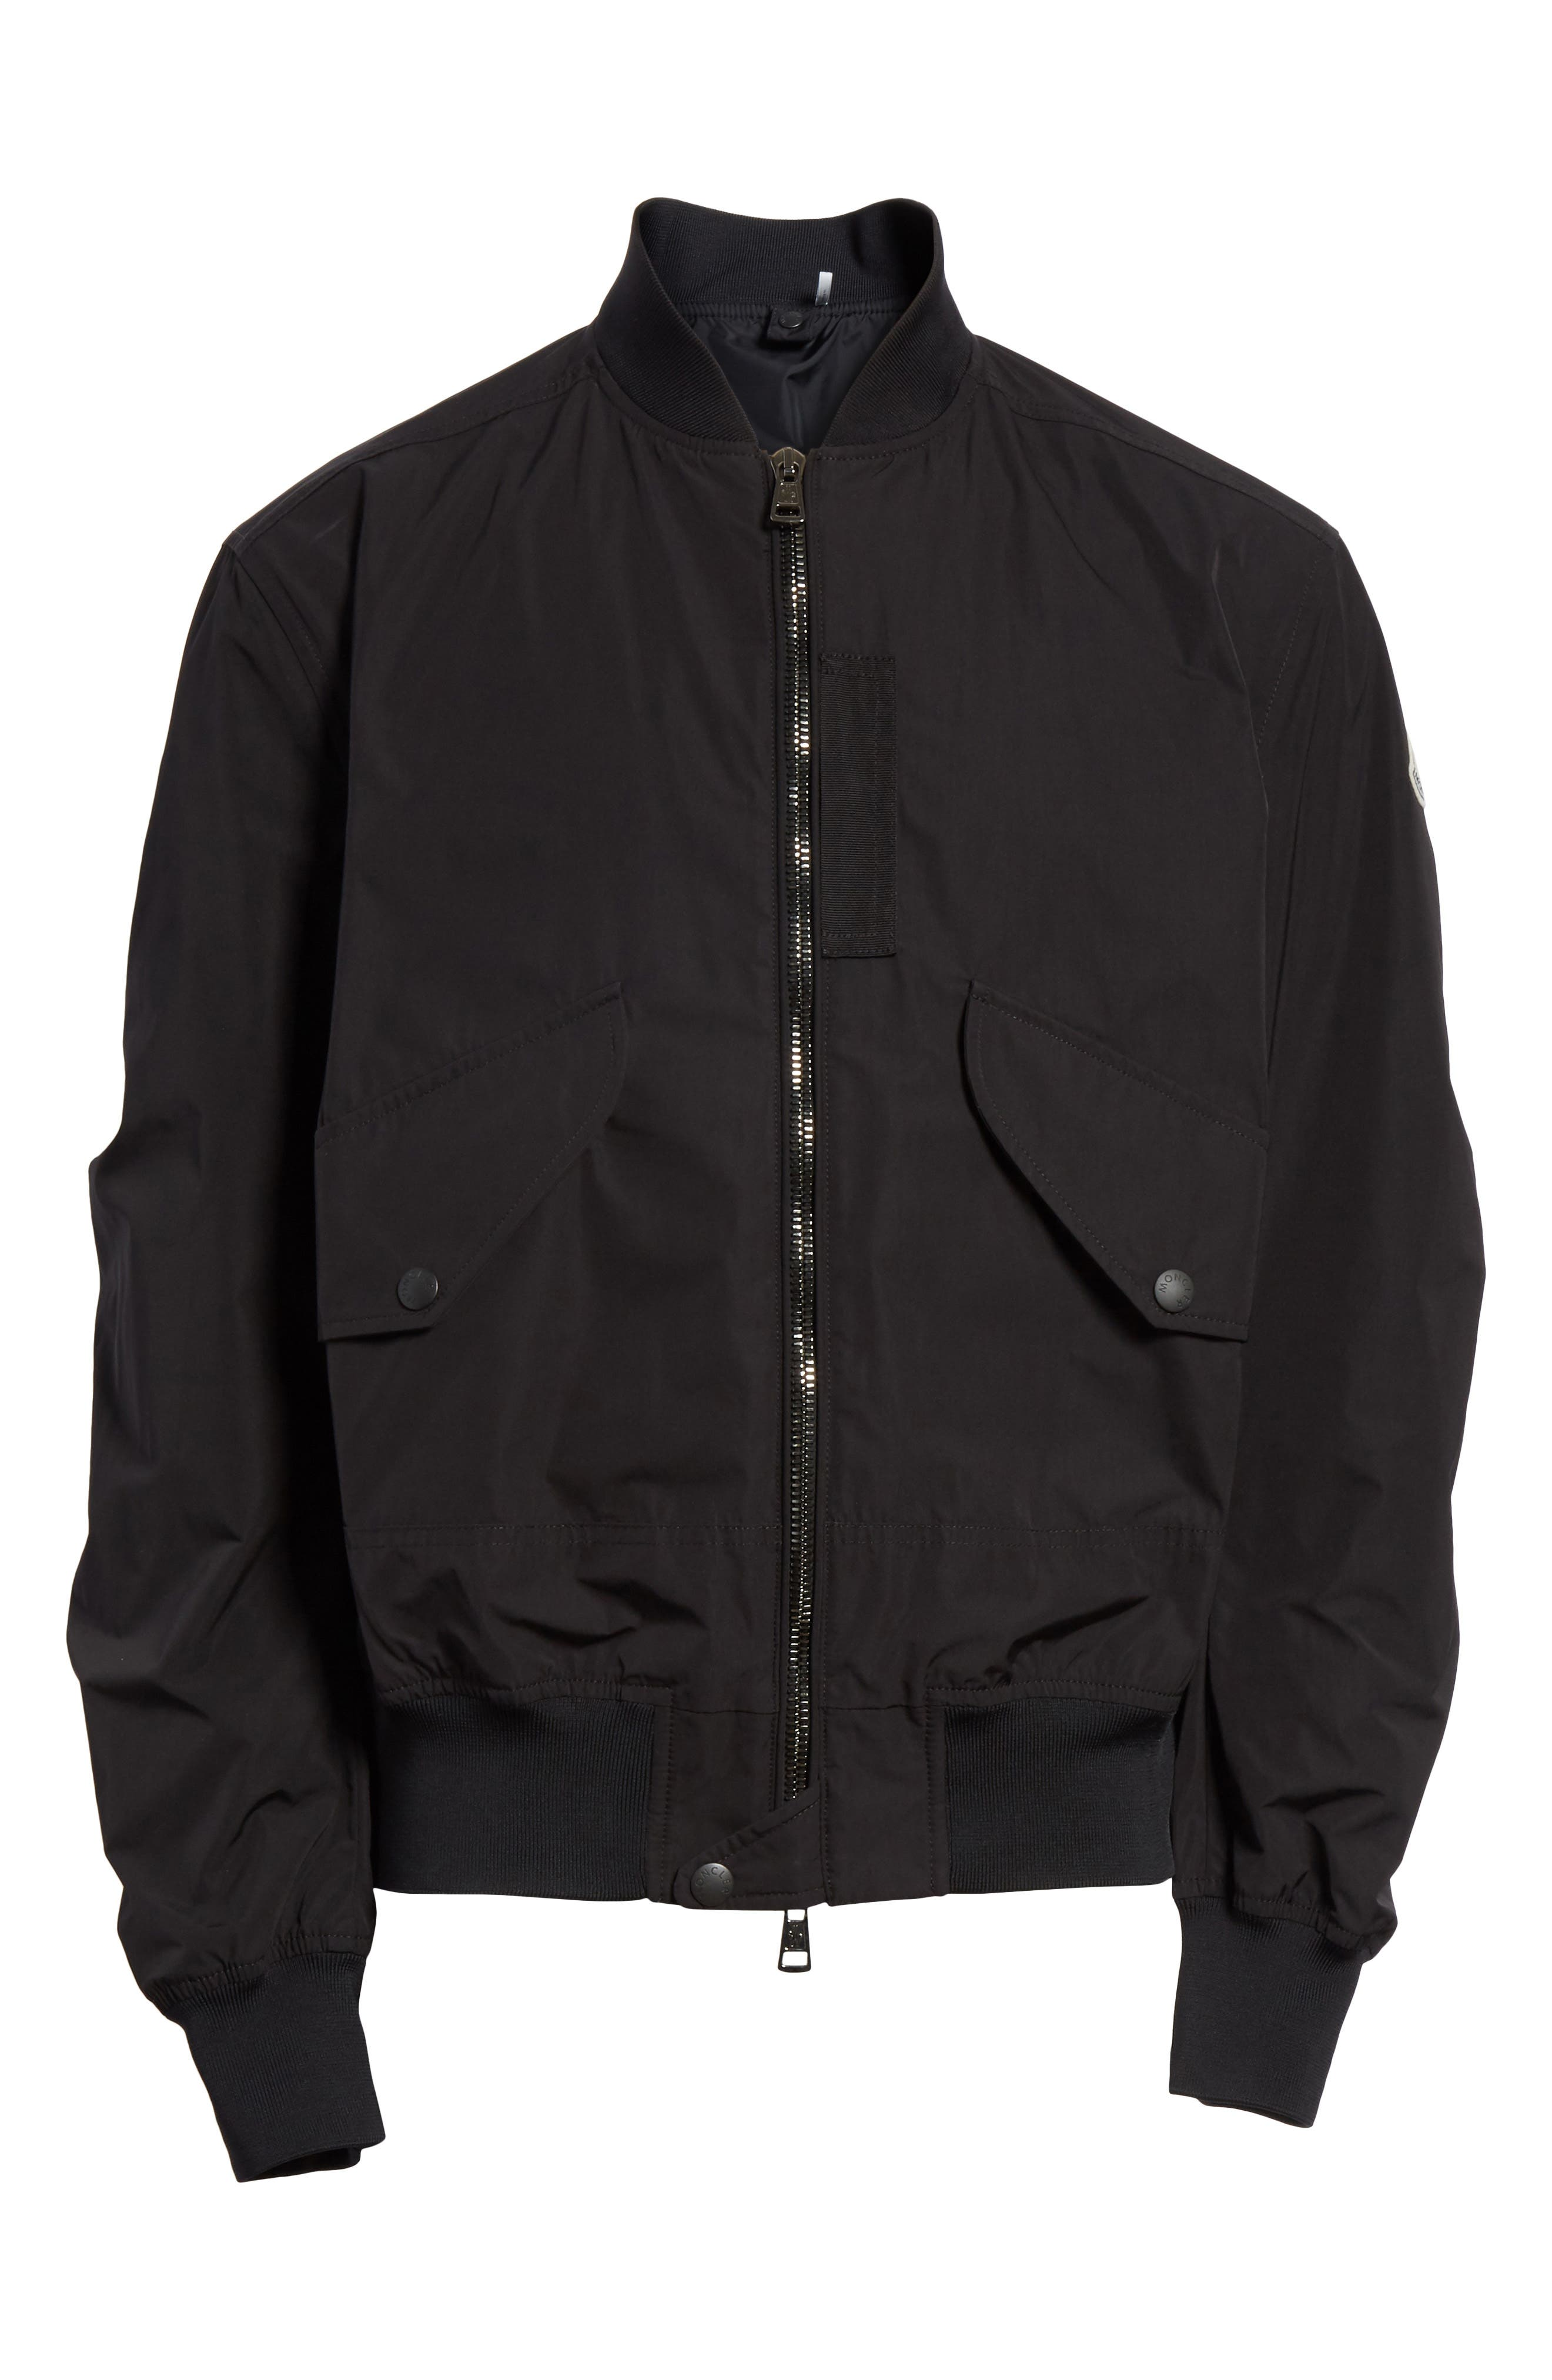 Artouste Bomber Jacket,                             Alternate thumbnail 5, color,                             001